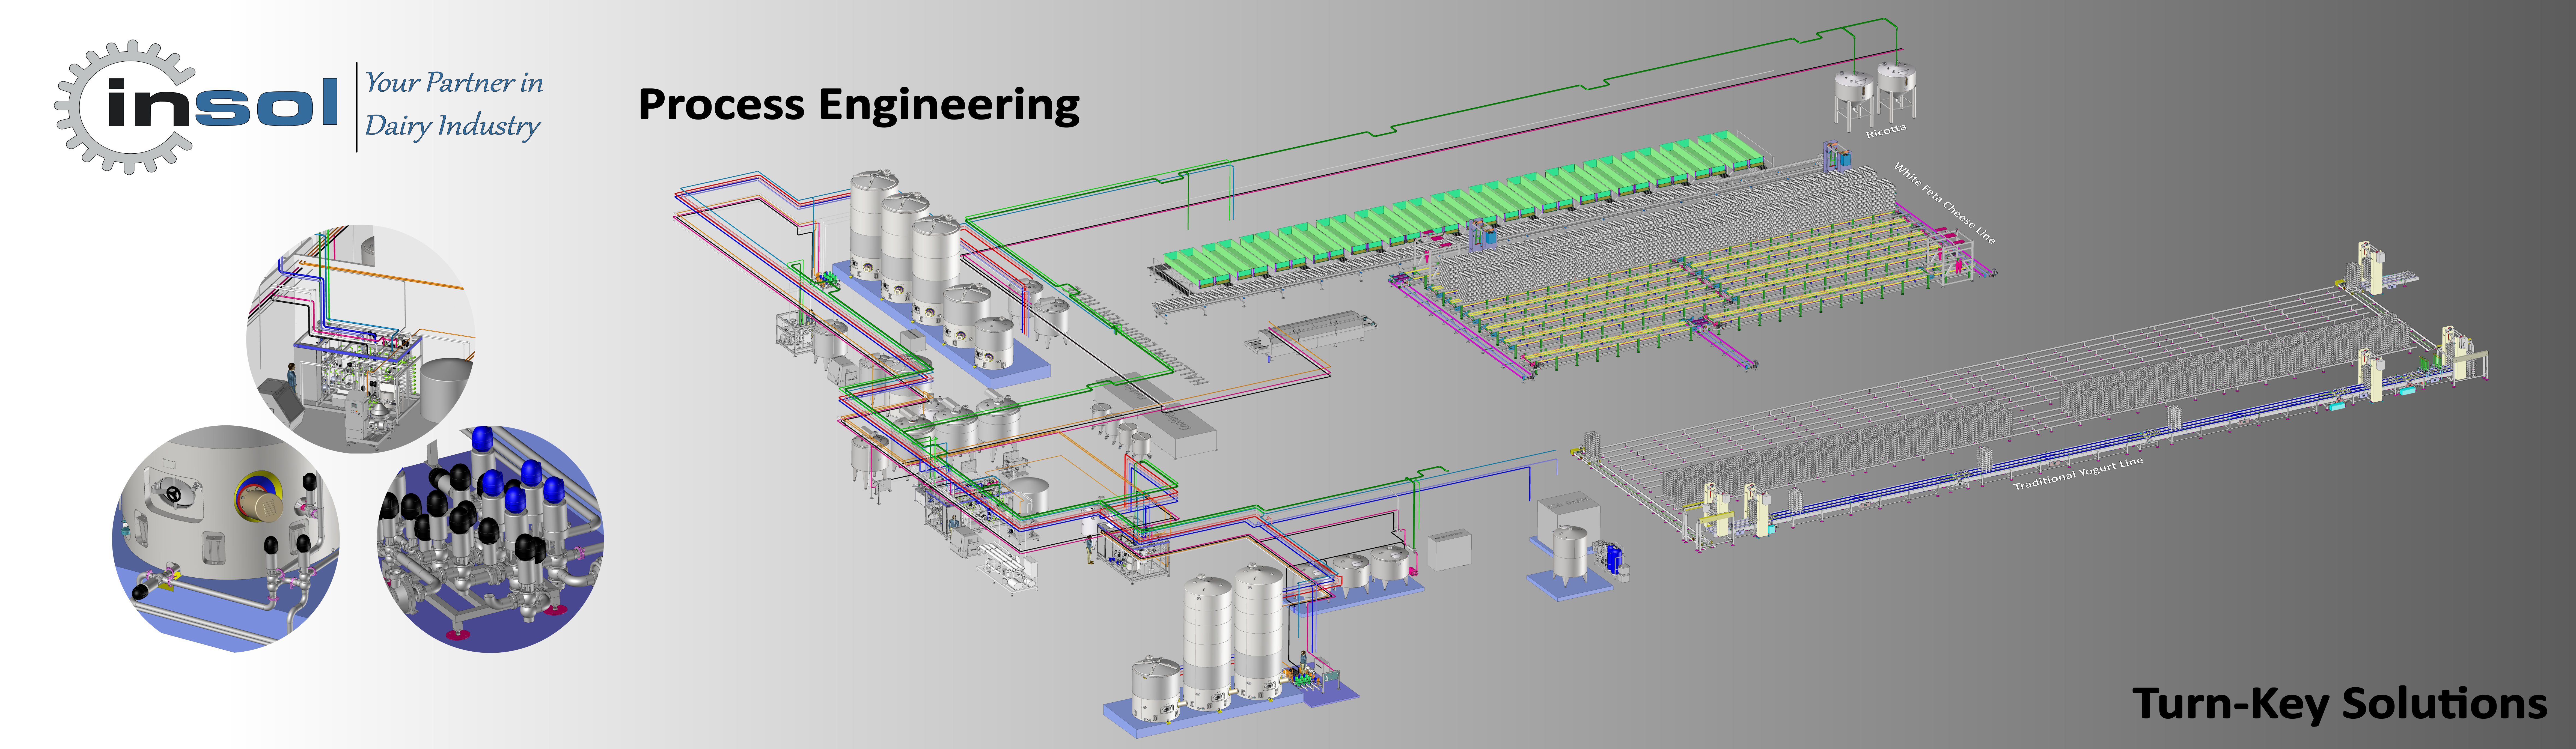 Insol process engineering in 2020 Process engineering